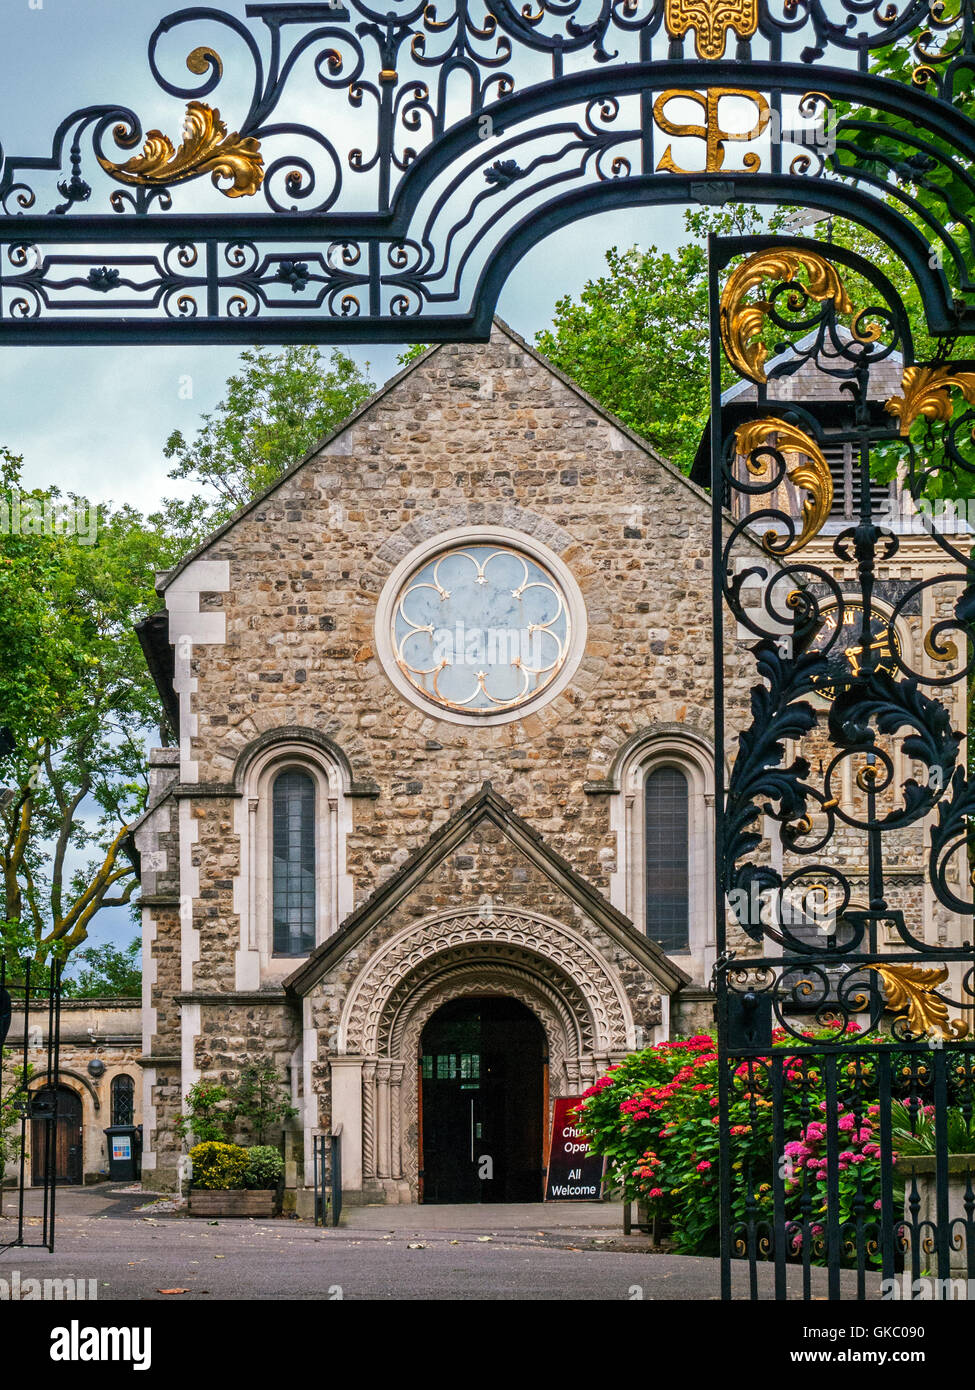 St Pancras Old Church, front and gate detail, London - Stock Image